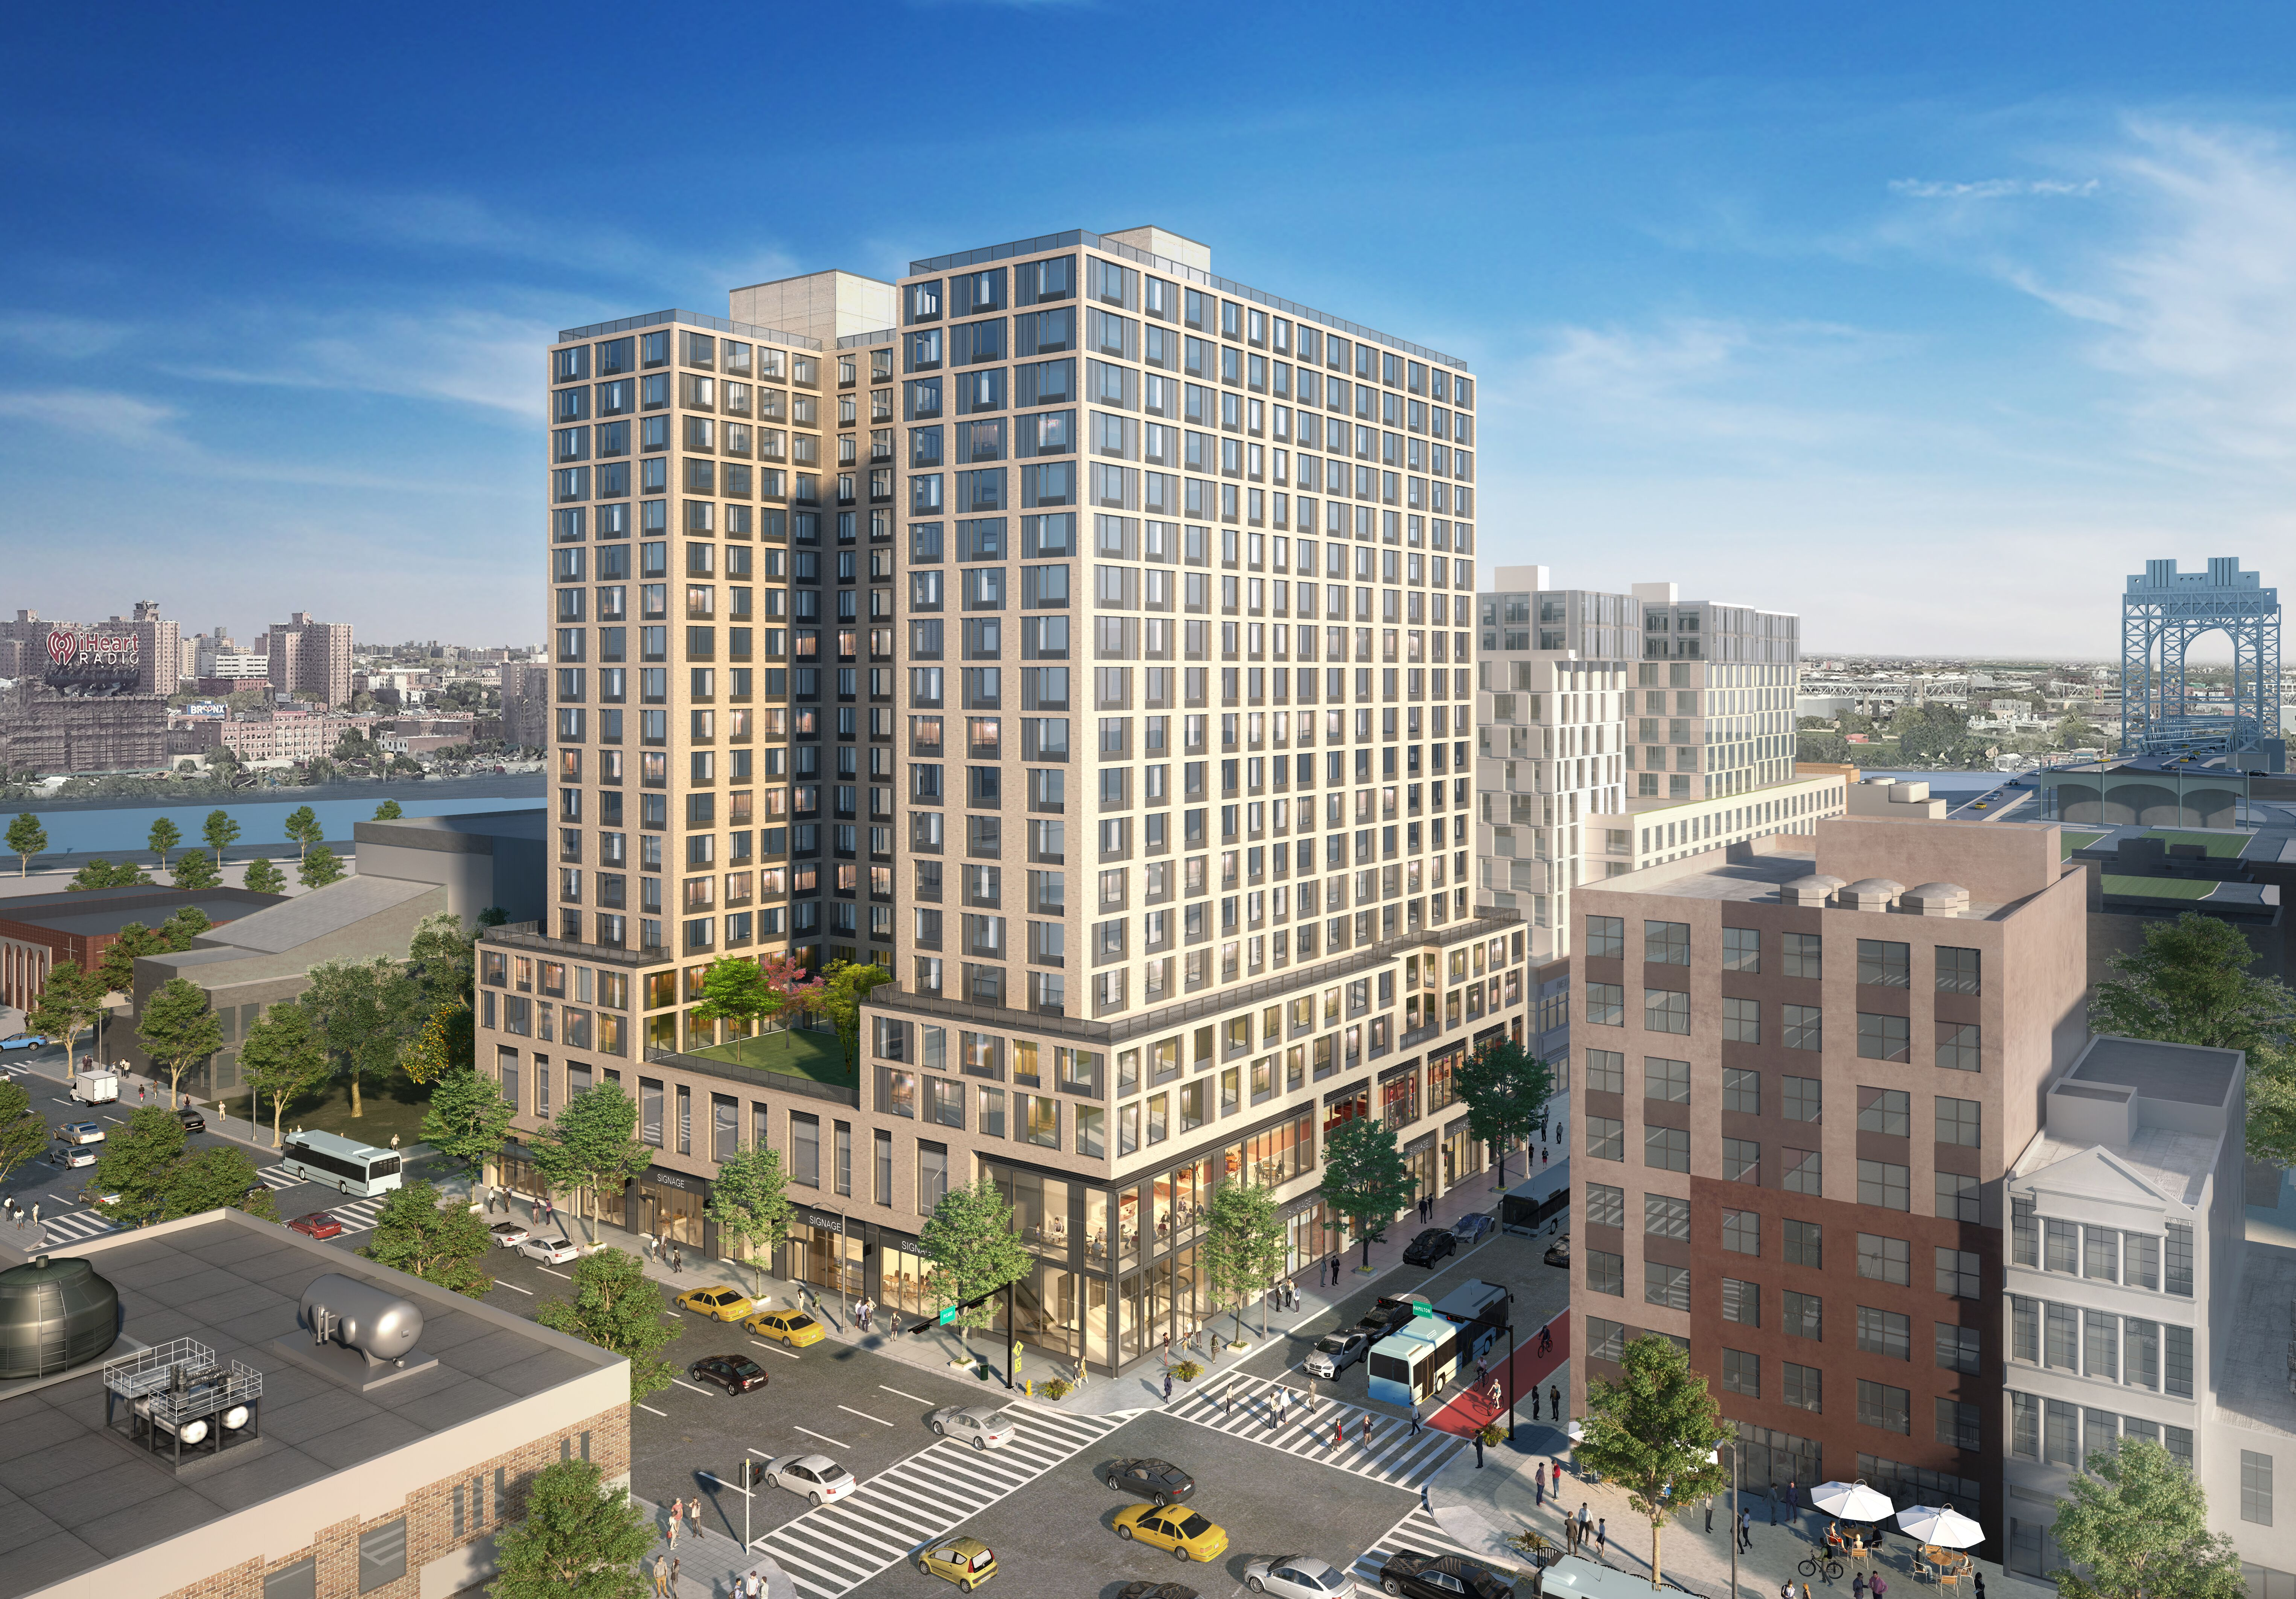 New affordable housing development coming to East Harlem - Curbed NY